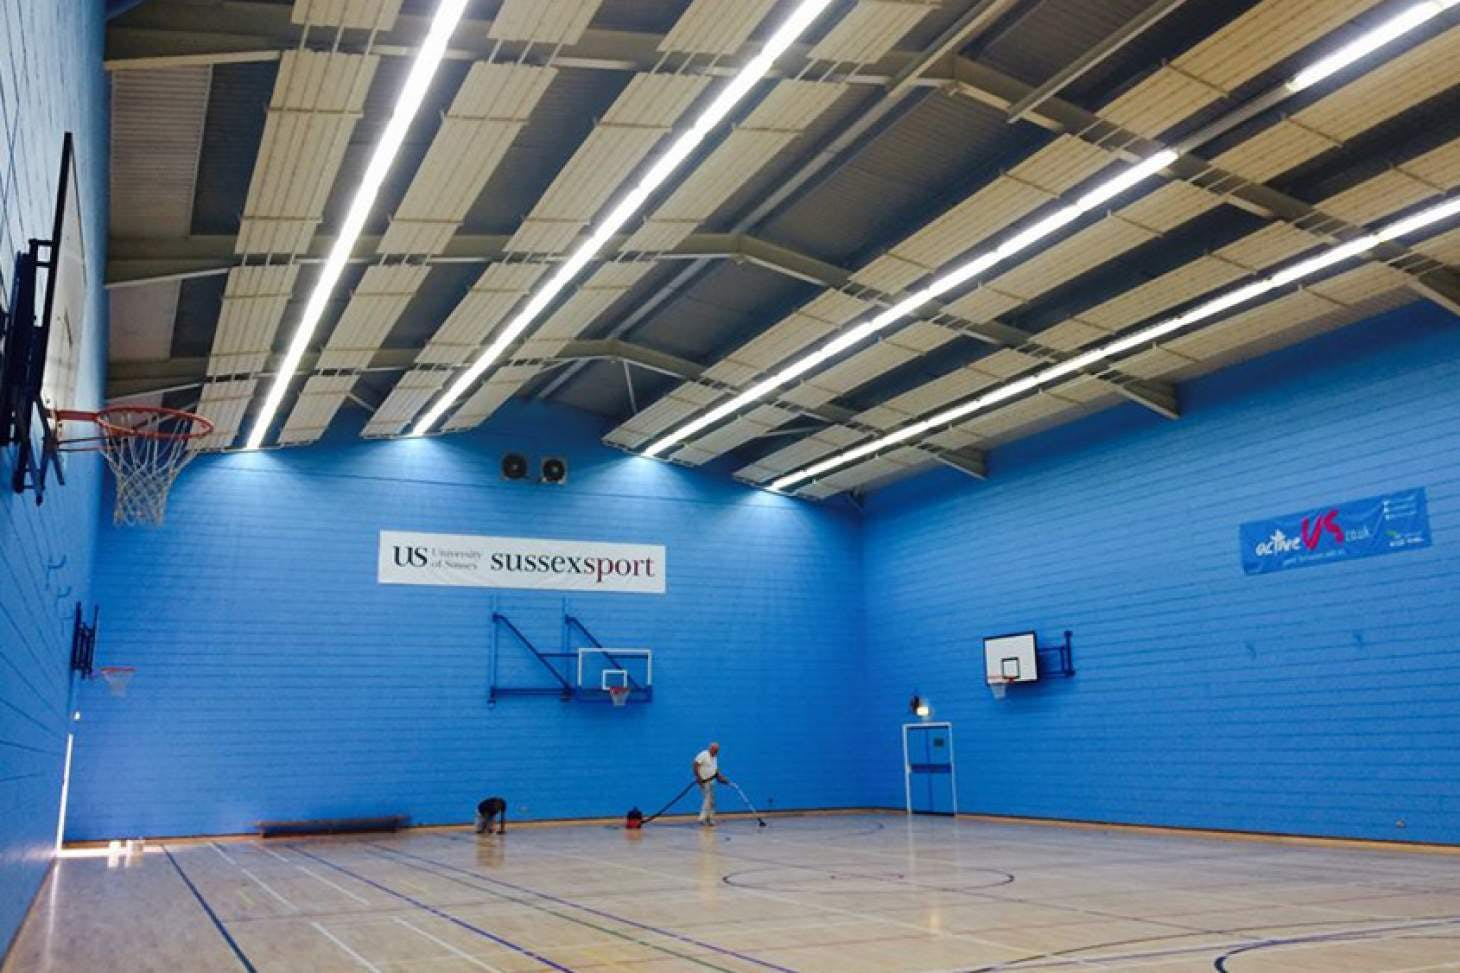 University Of Sussex Sport Centre 5 a side | Indoor football pitch